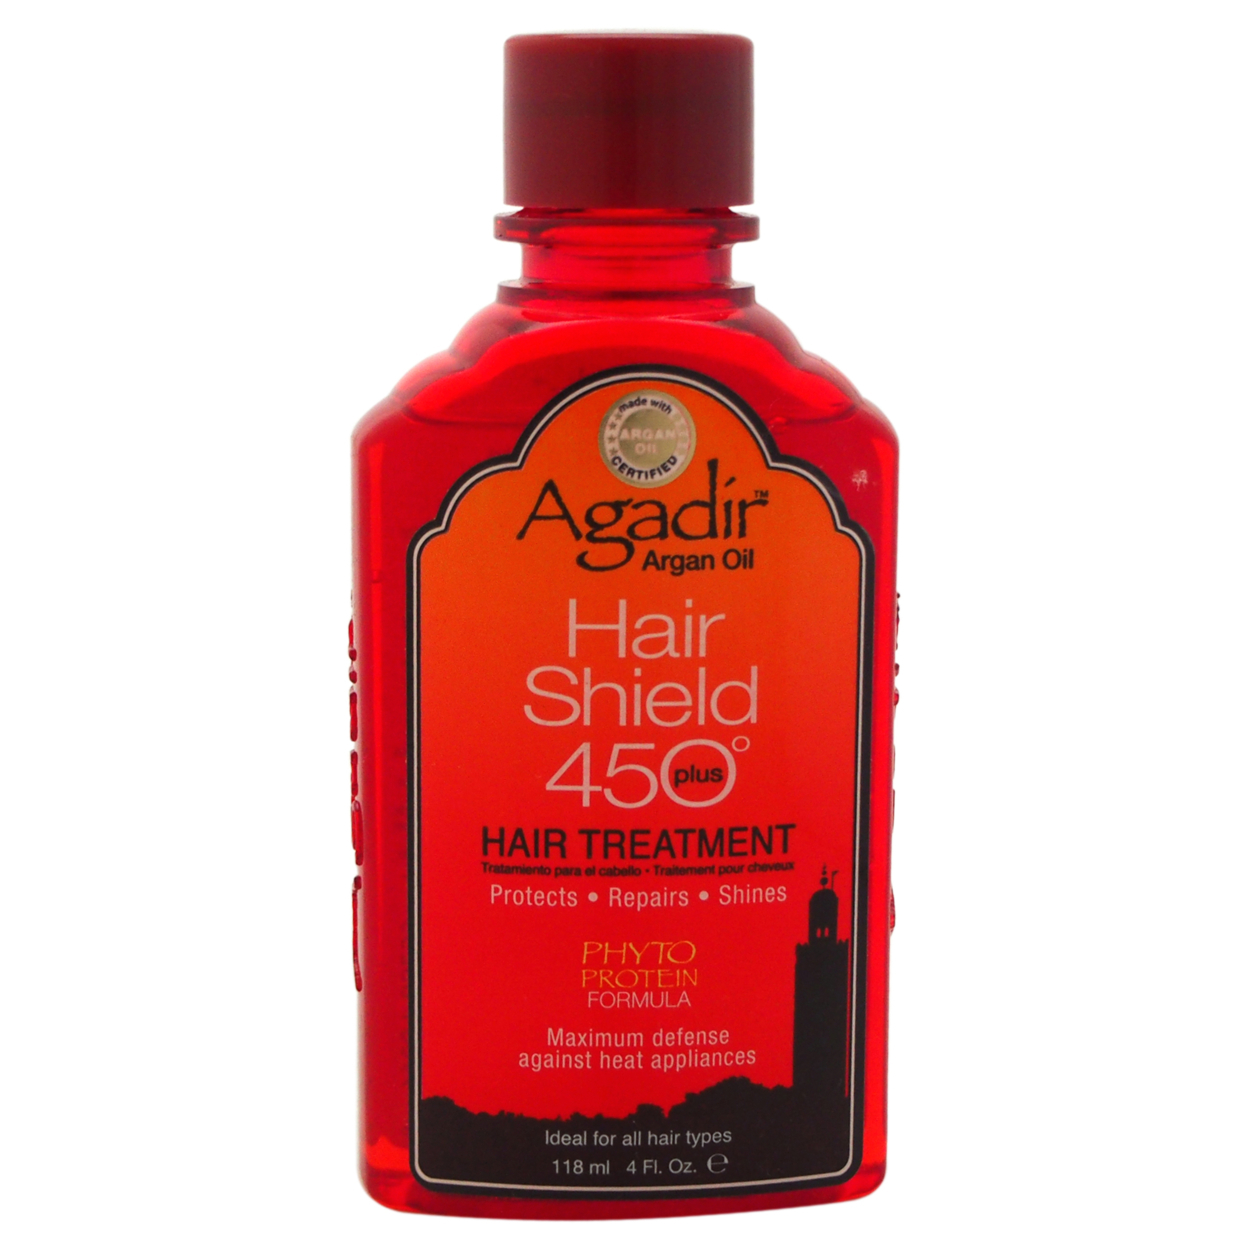 Argan Oil Hair Shield 450 Hair Oil Treatment by Agadir for Unisex - 4 oz Treatment 56d0b847a3771c66288b5ff7